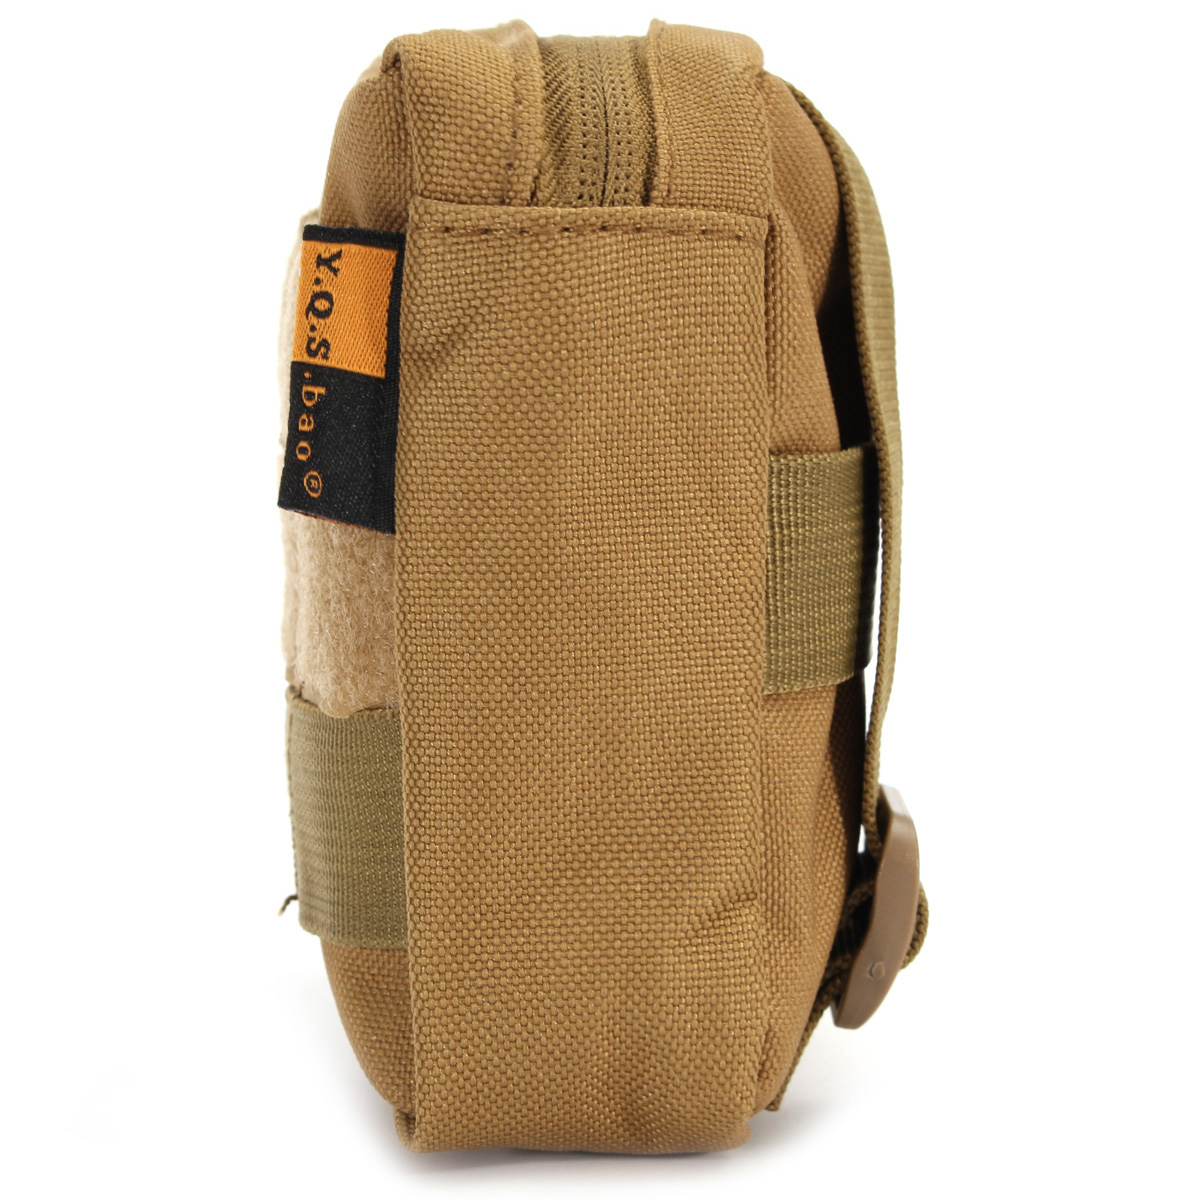 Waterproof Waist Pouch Bag Pack Military Tactical Camping Hiking Motorcycle